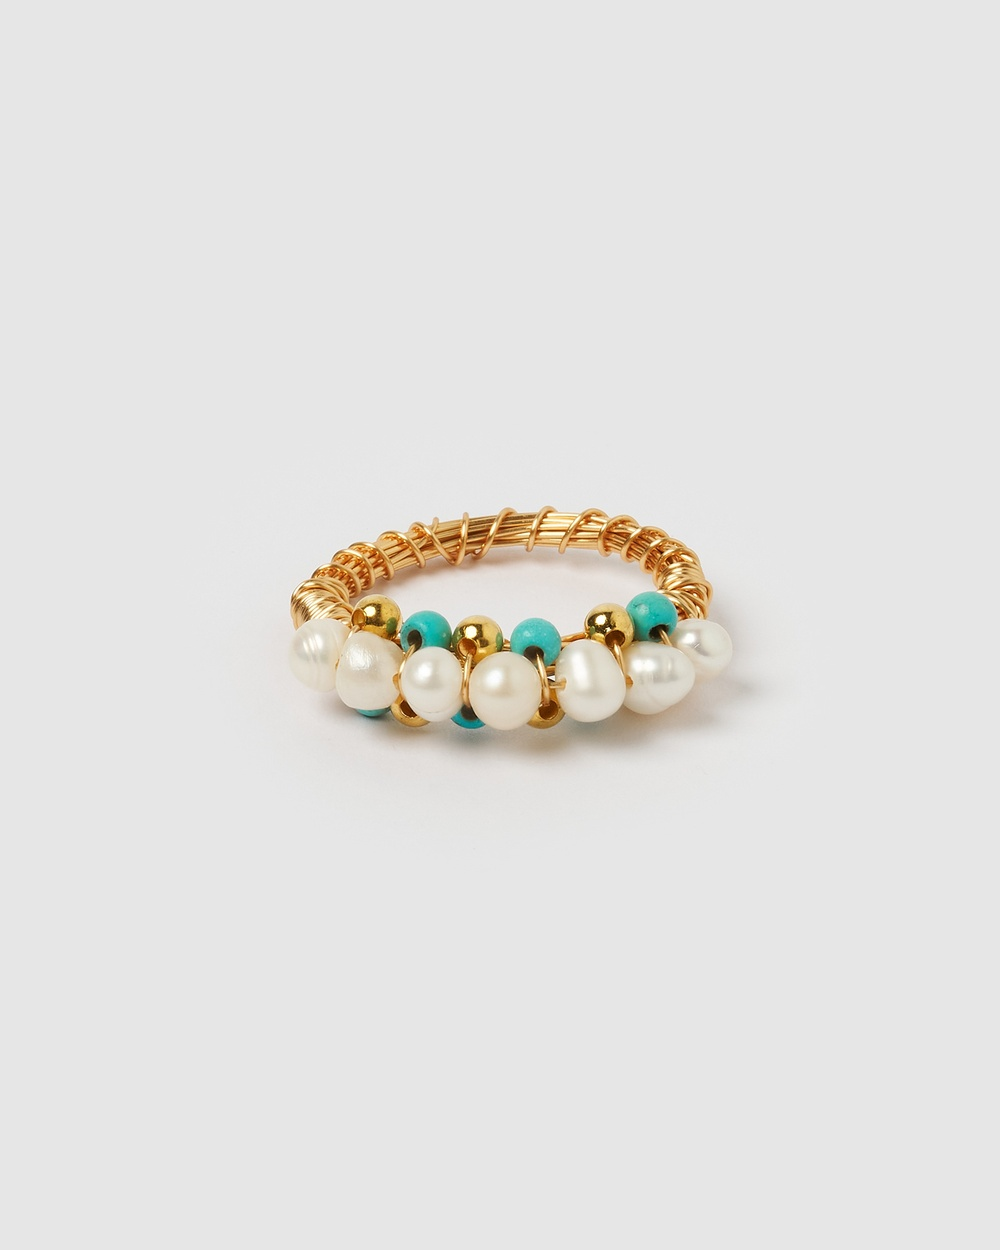 Miz Casa and Co Melanie Ring Jewellery Gold Turquoise Pearl